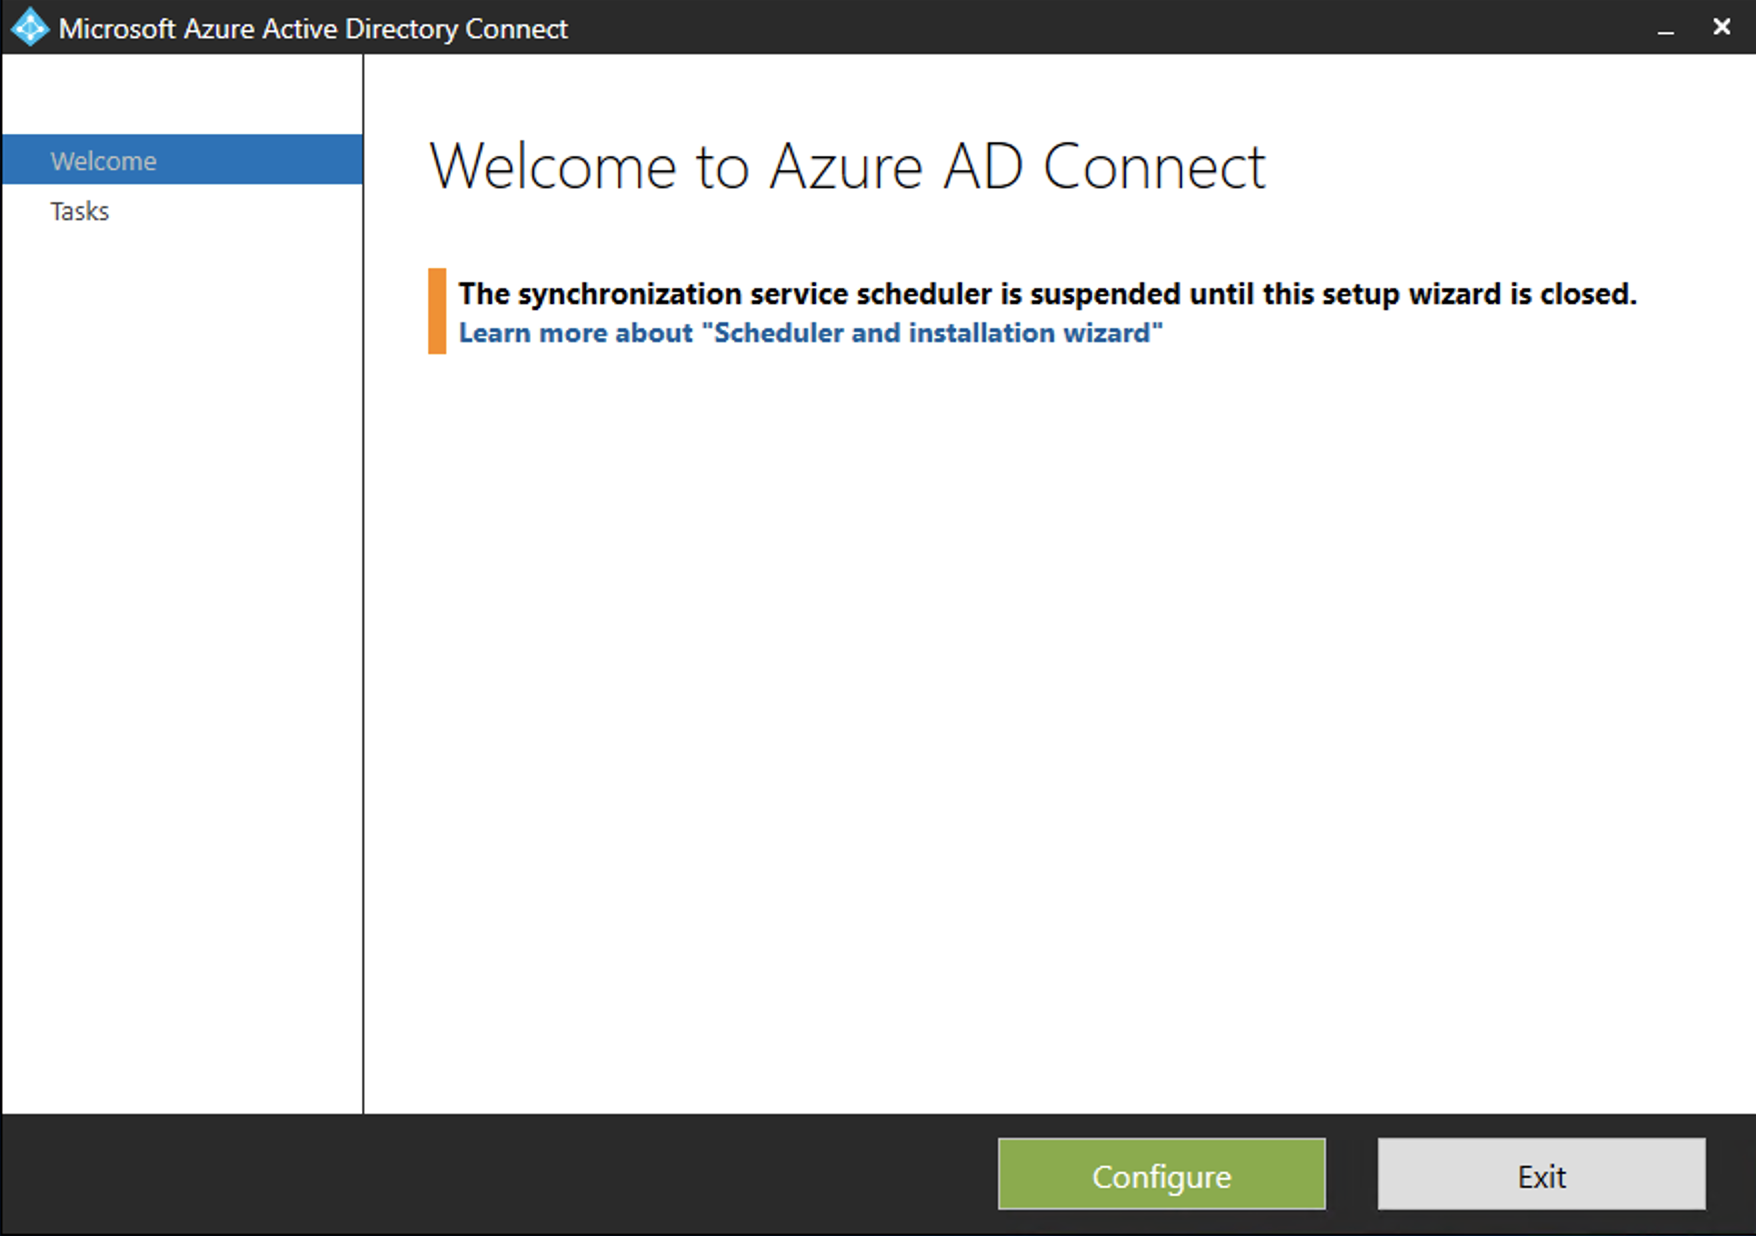 Azure AD Connect Welcome box